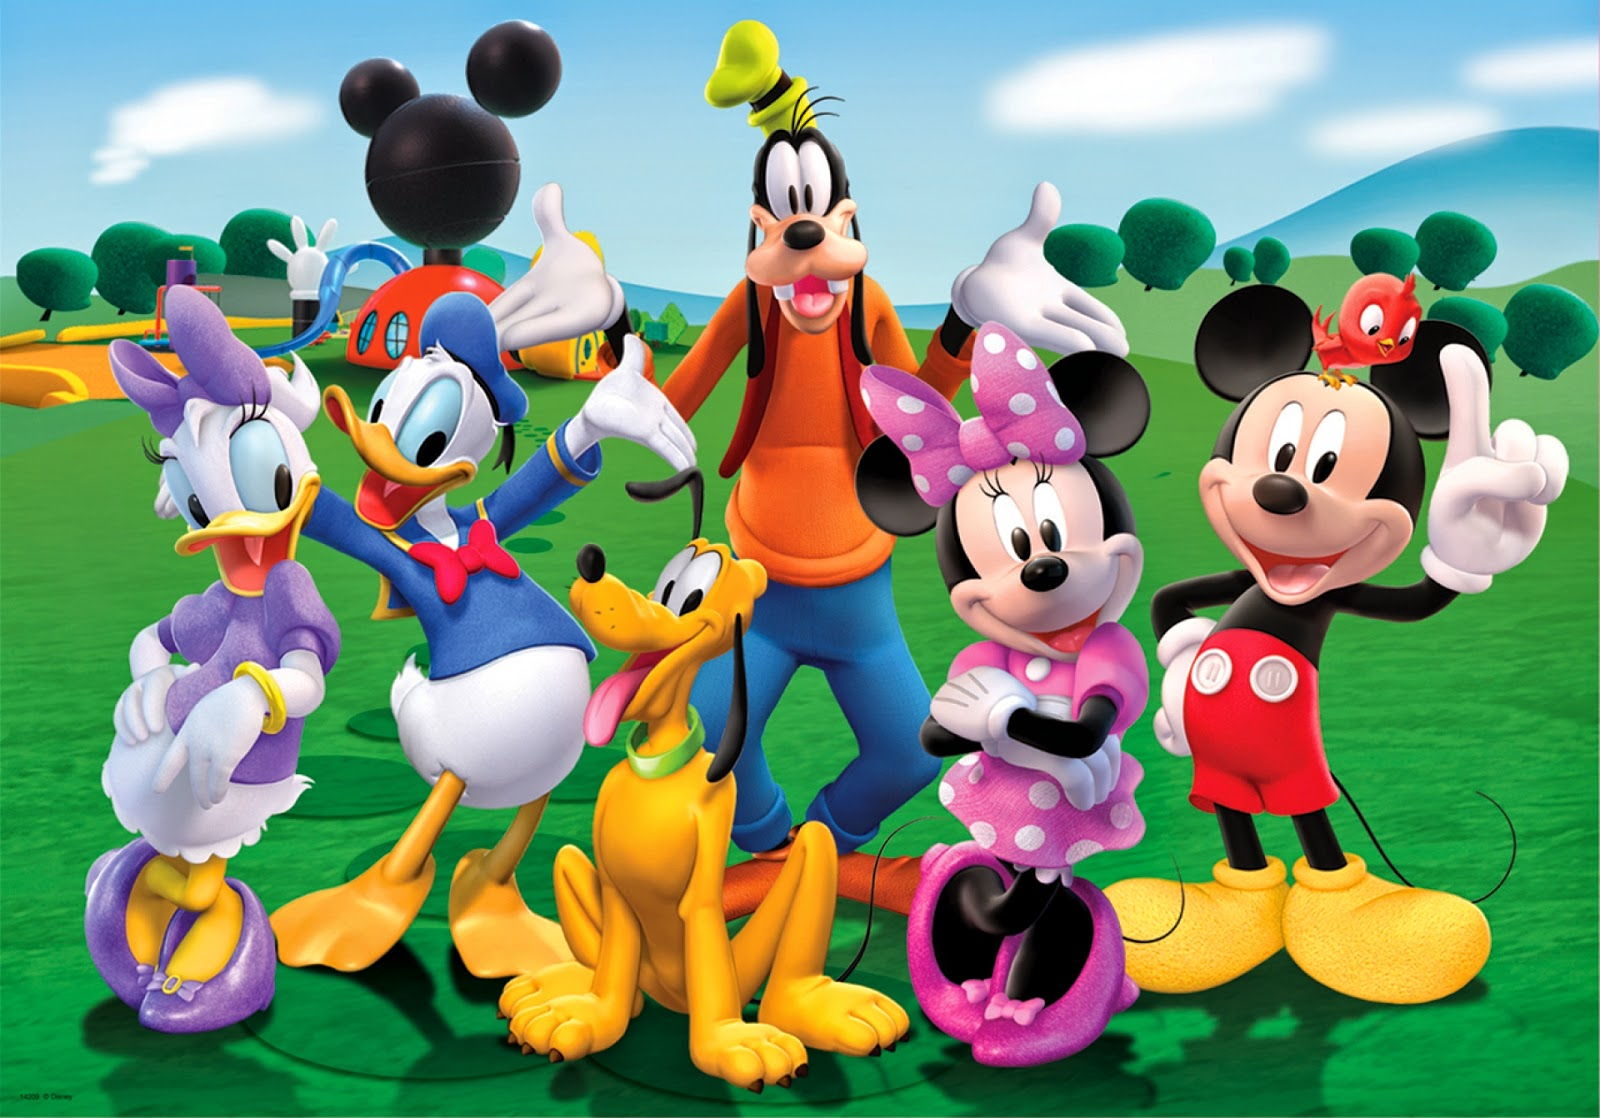 Mickey Mouse Wallpapers, part 1